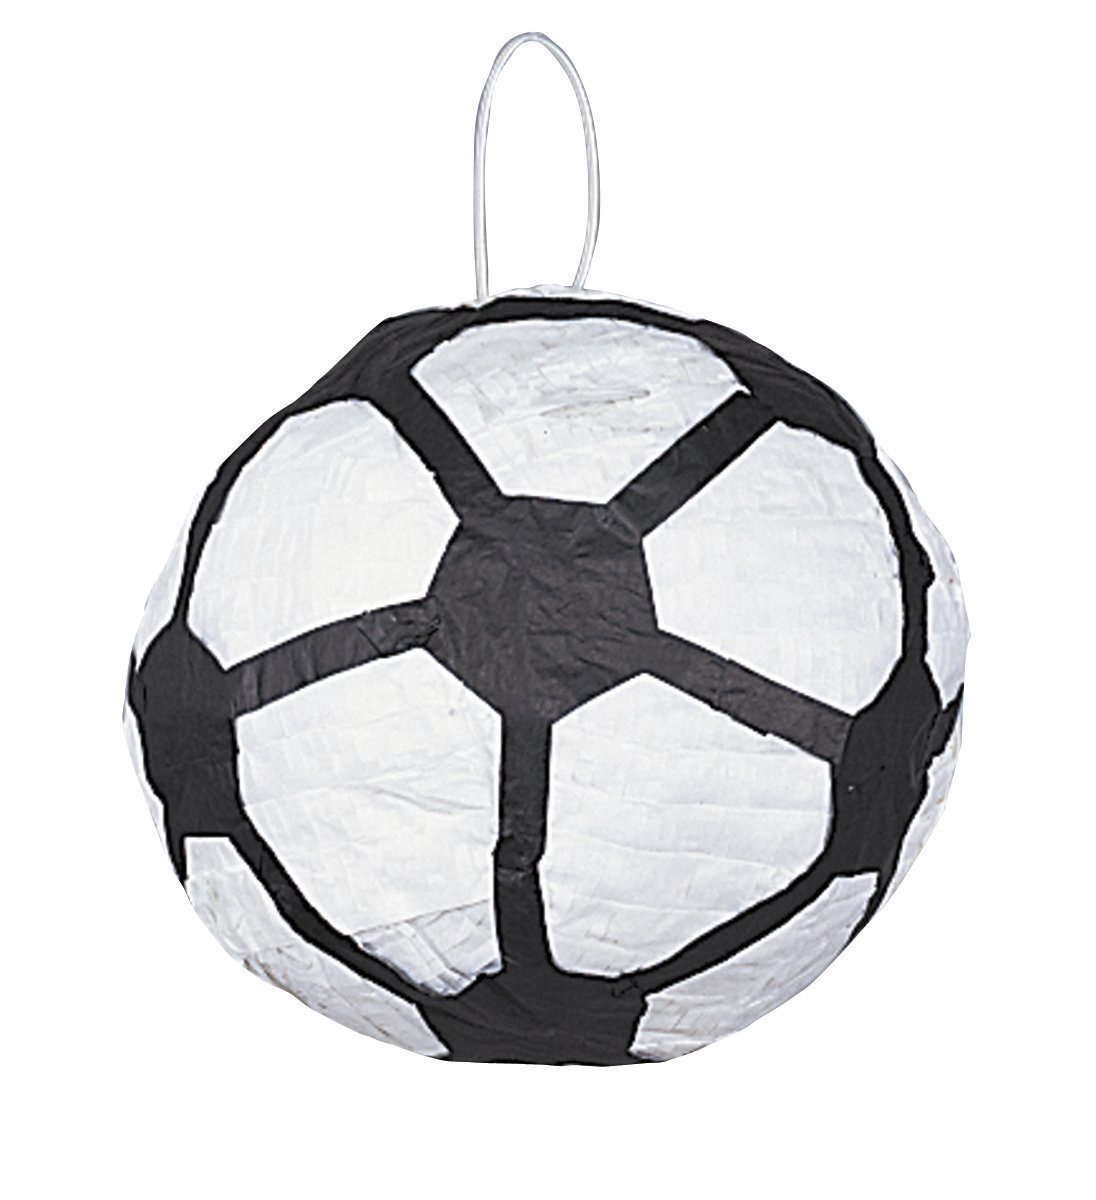 STD PINATA SOCCER BALL